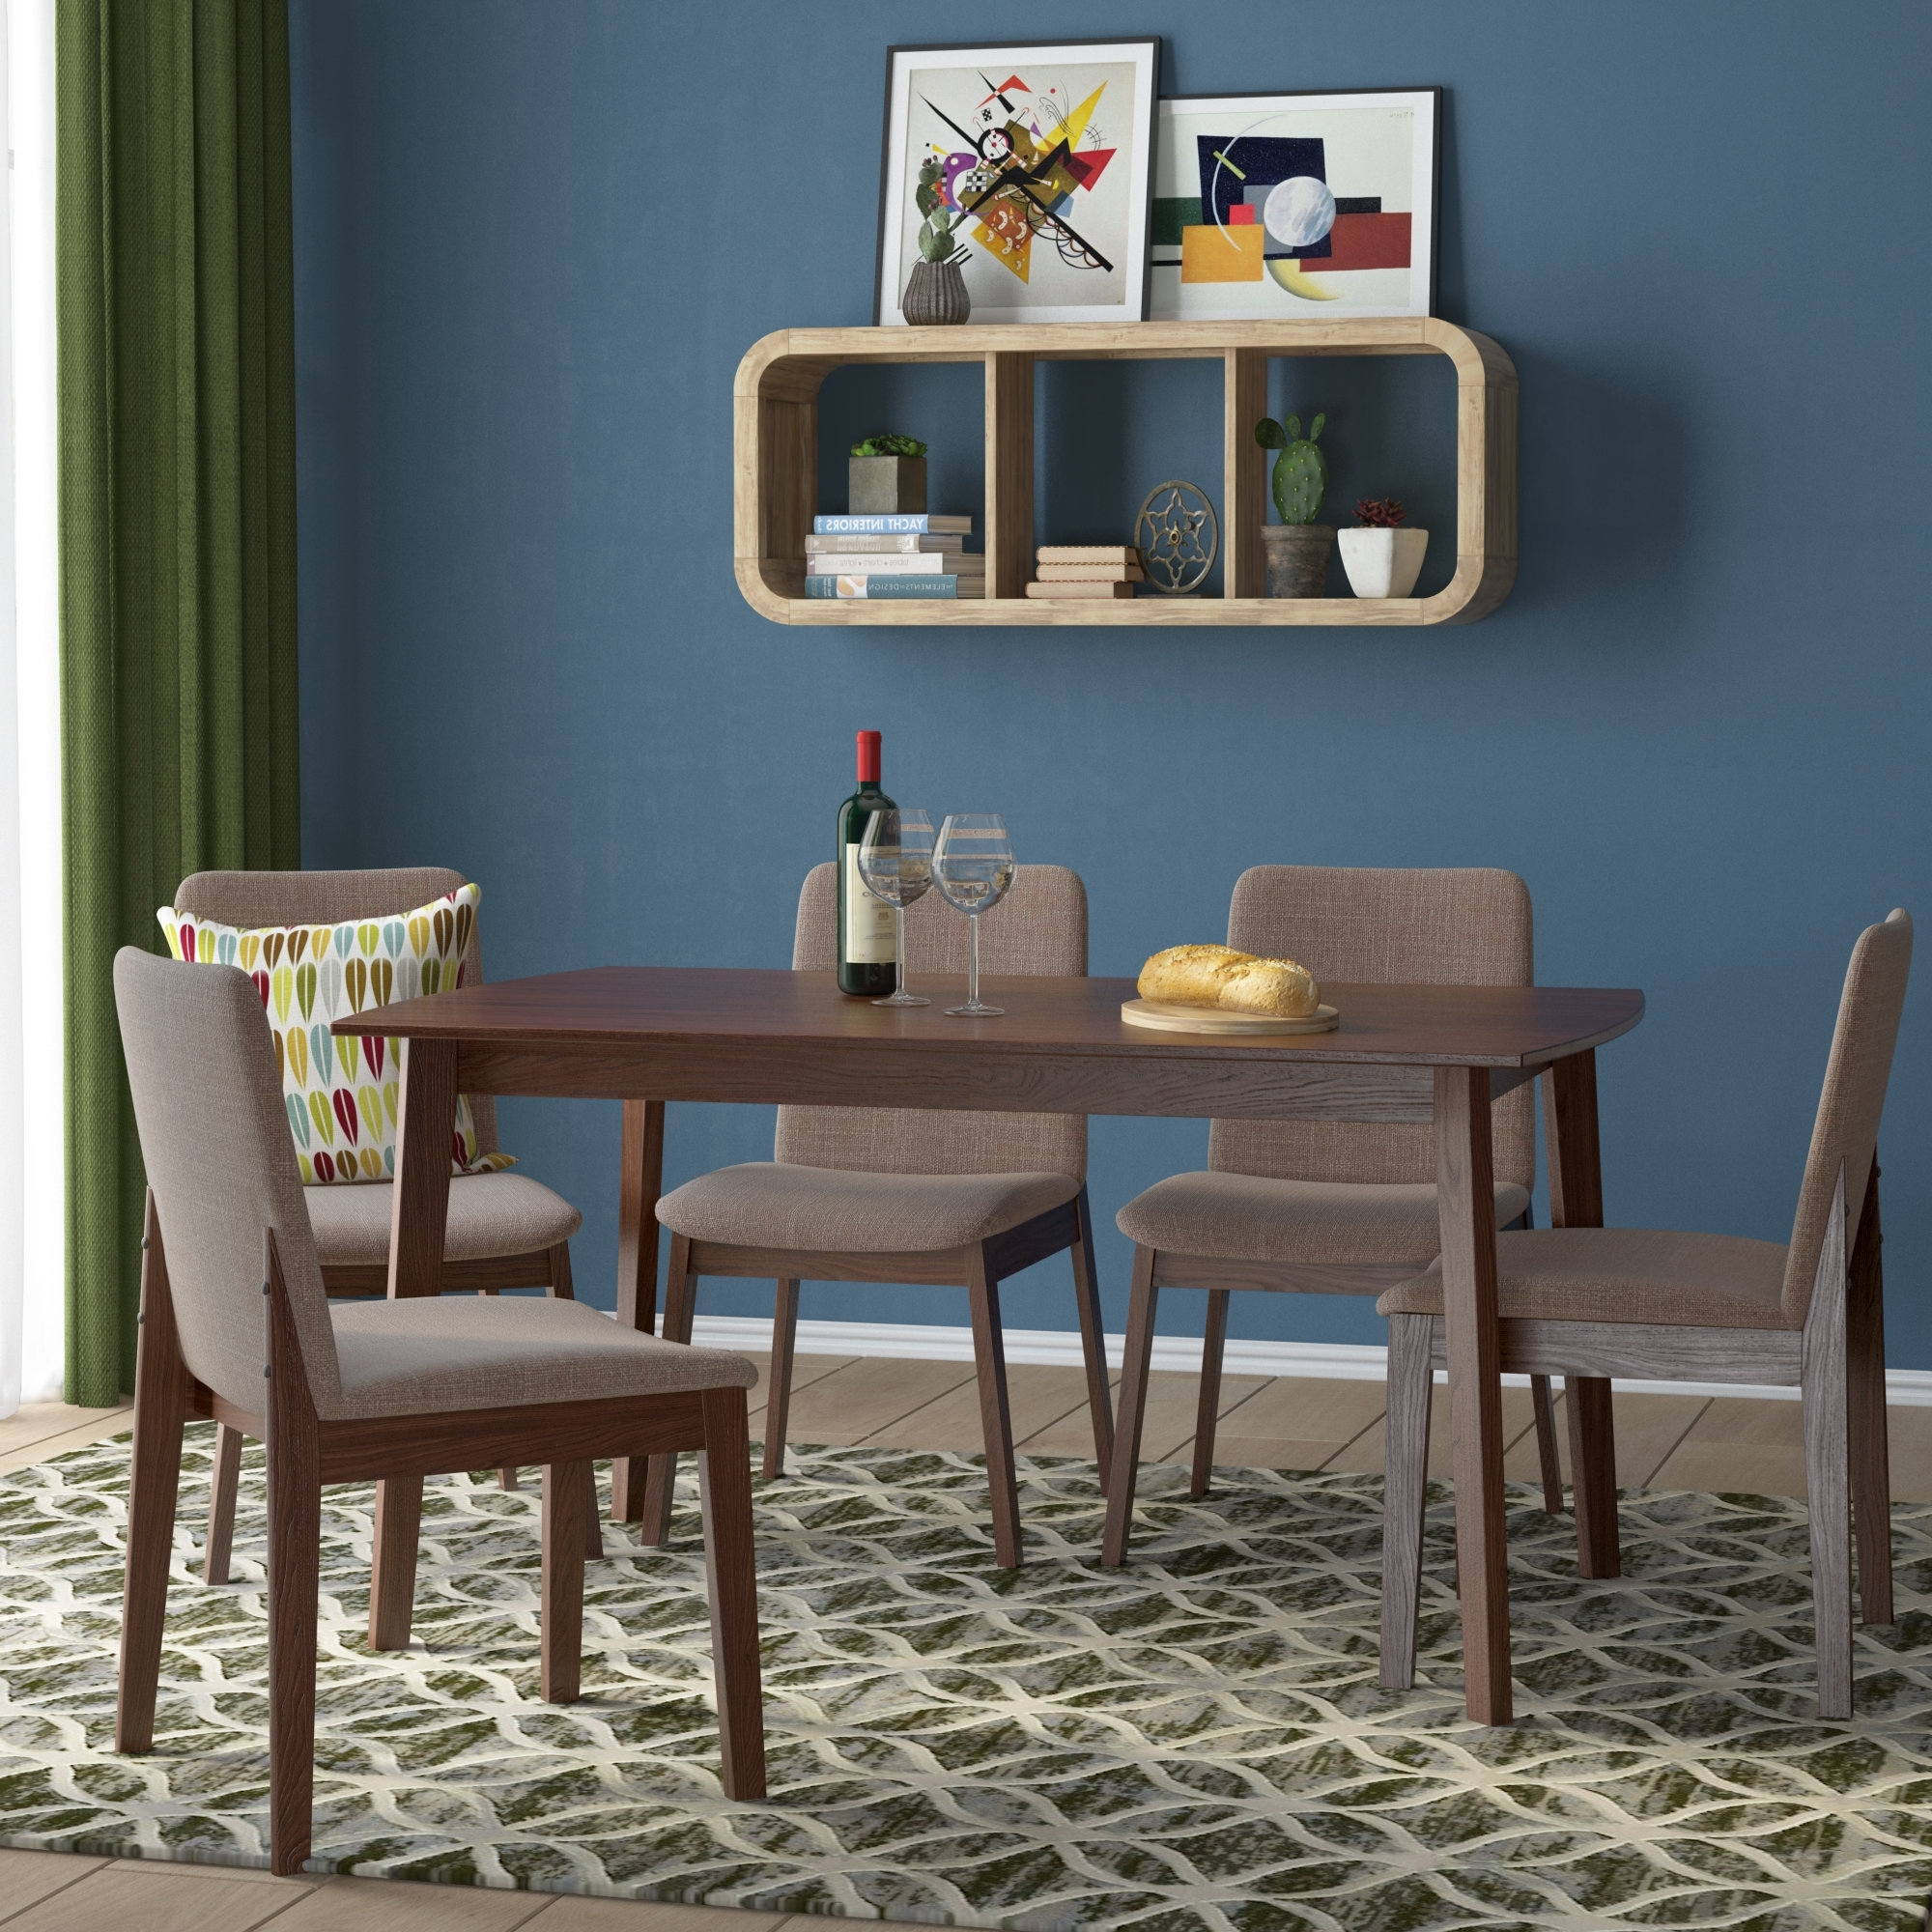 Well Liked Extendable Dining Table And 4 Chairs Throughout Langley Street Tahquitz Extendable Dining Table And 4 Chairs (View 24 of 25)